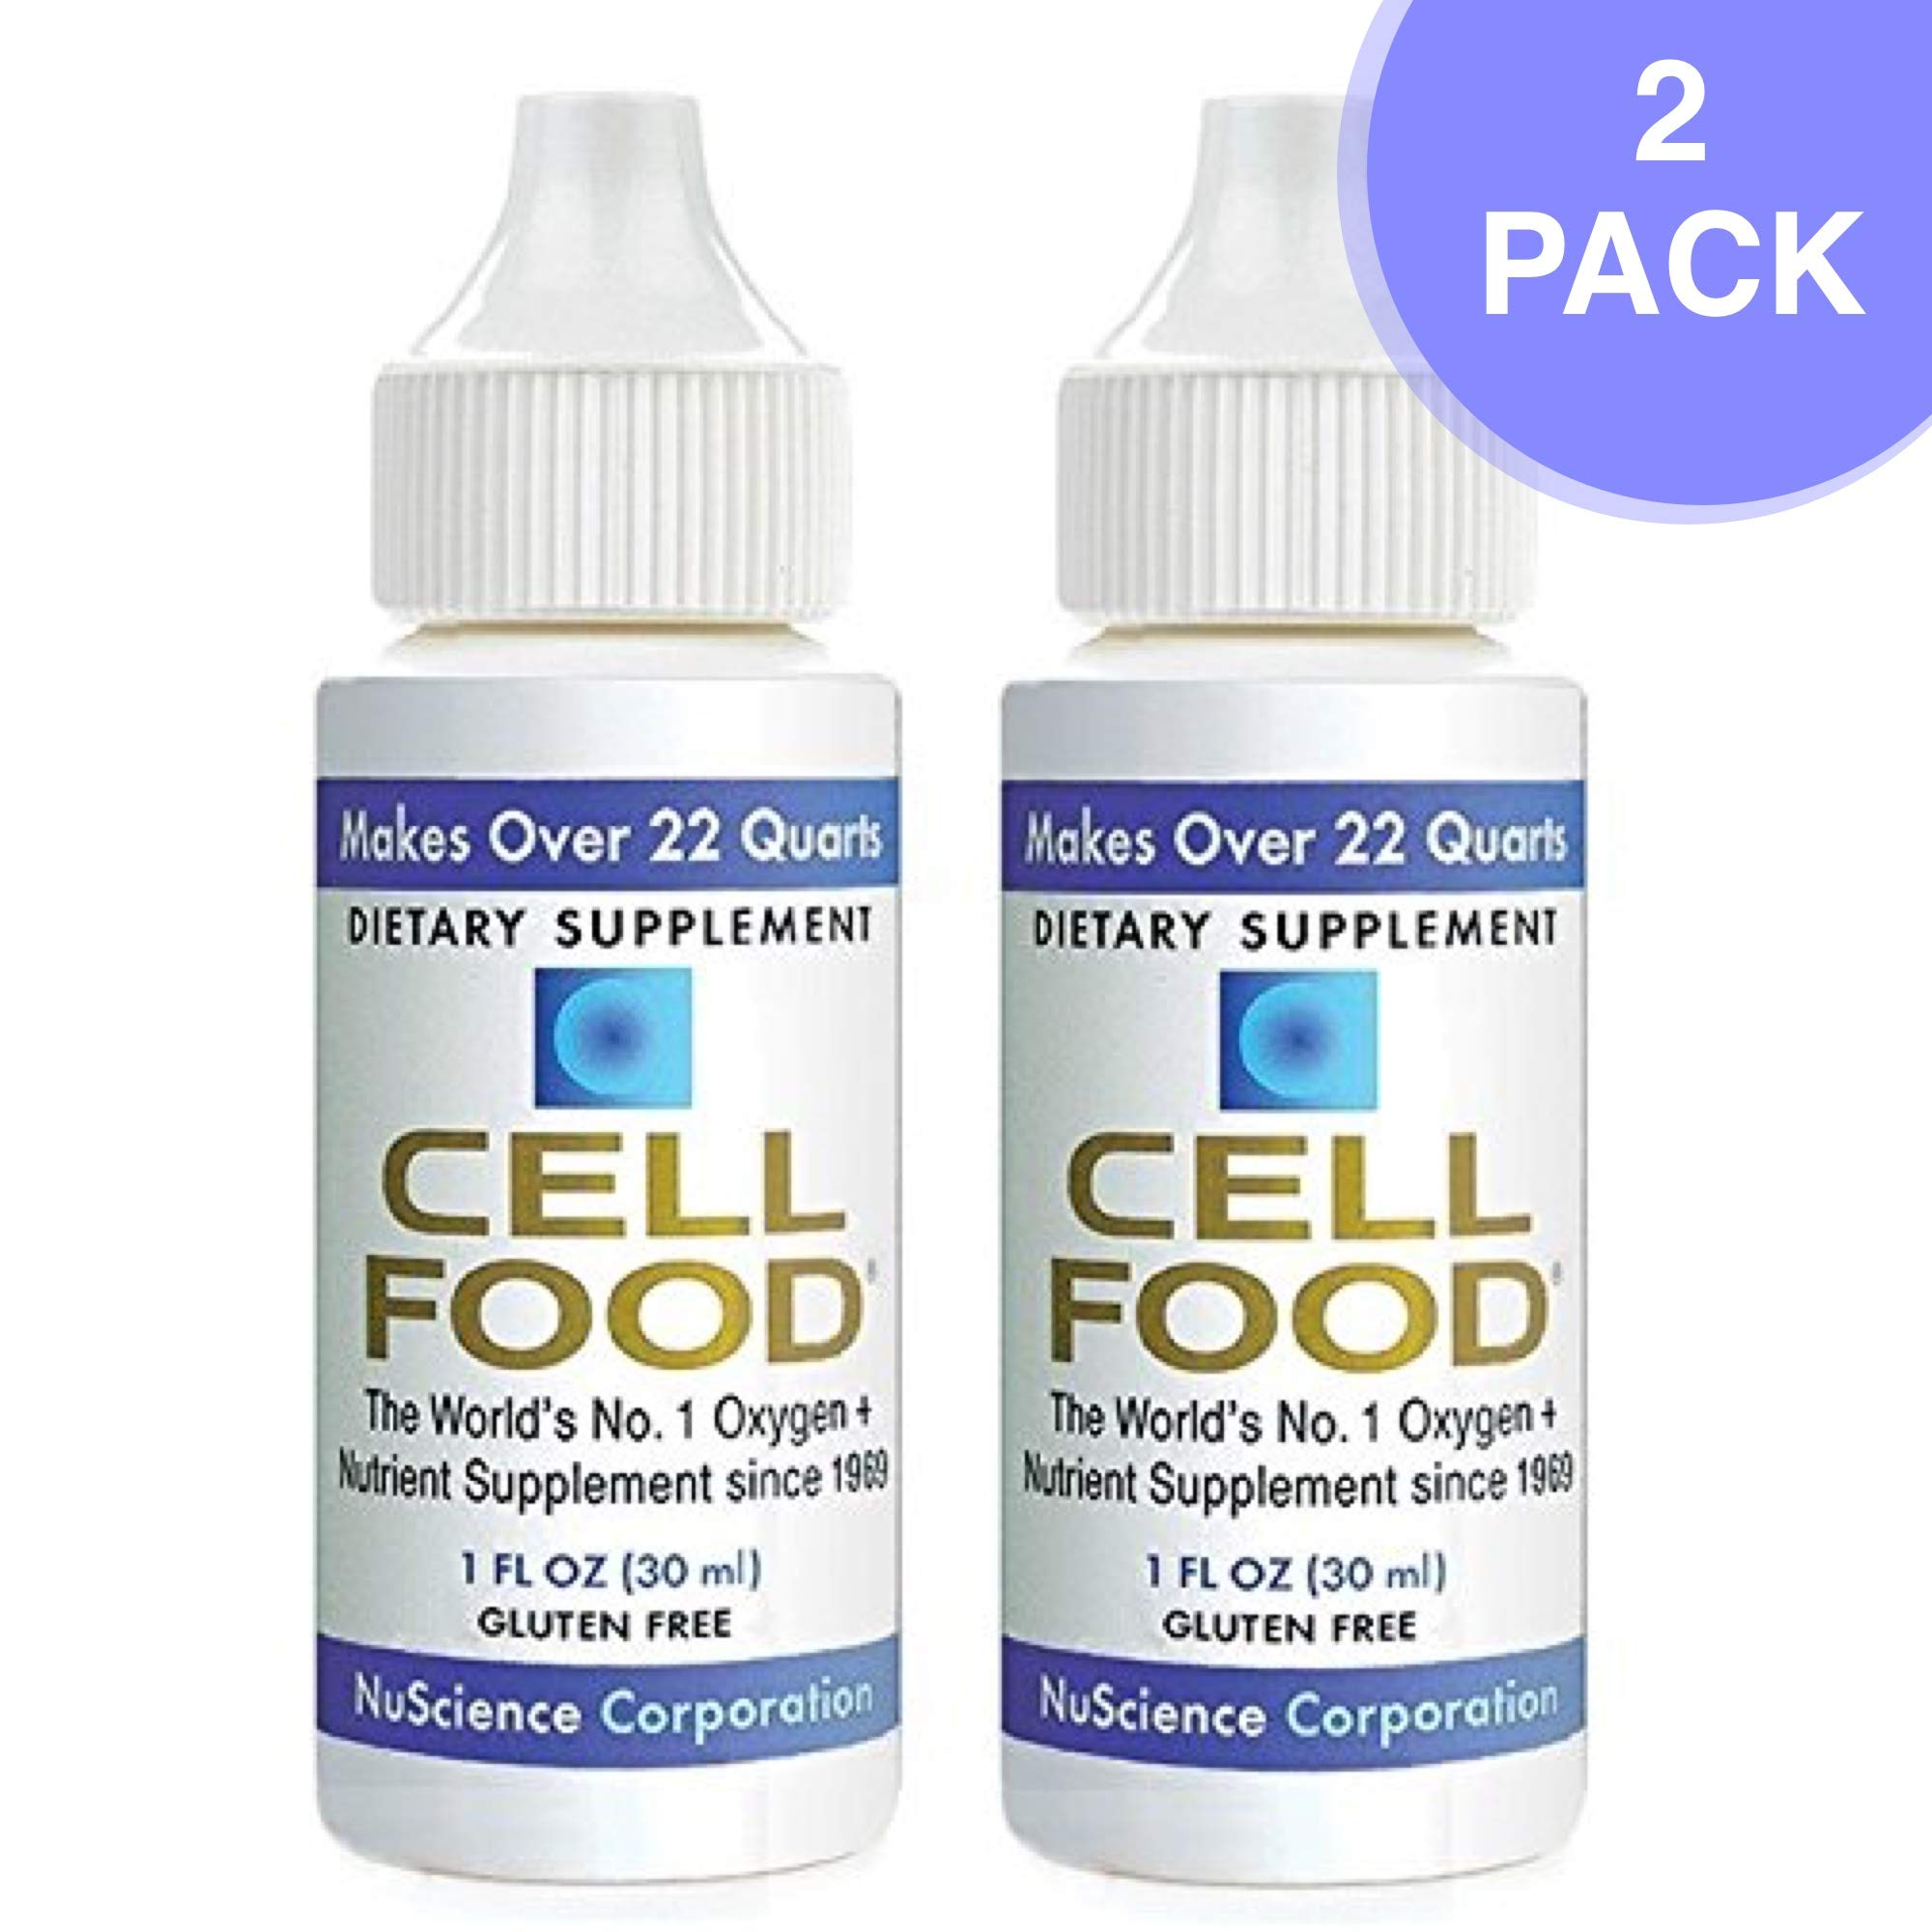 Cellfood Liquid Concentrate, 1 Oz. Bottle (Pack of 2) - Original Oxygenating Formula Containing Seaweed Sourced Minerals, Enzymes, Amino Acids, Electrolytes, Superior Absorption- Gluten Free, GMO Free